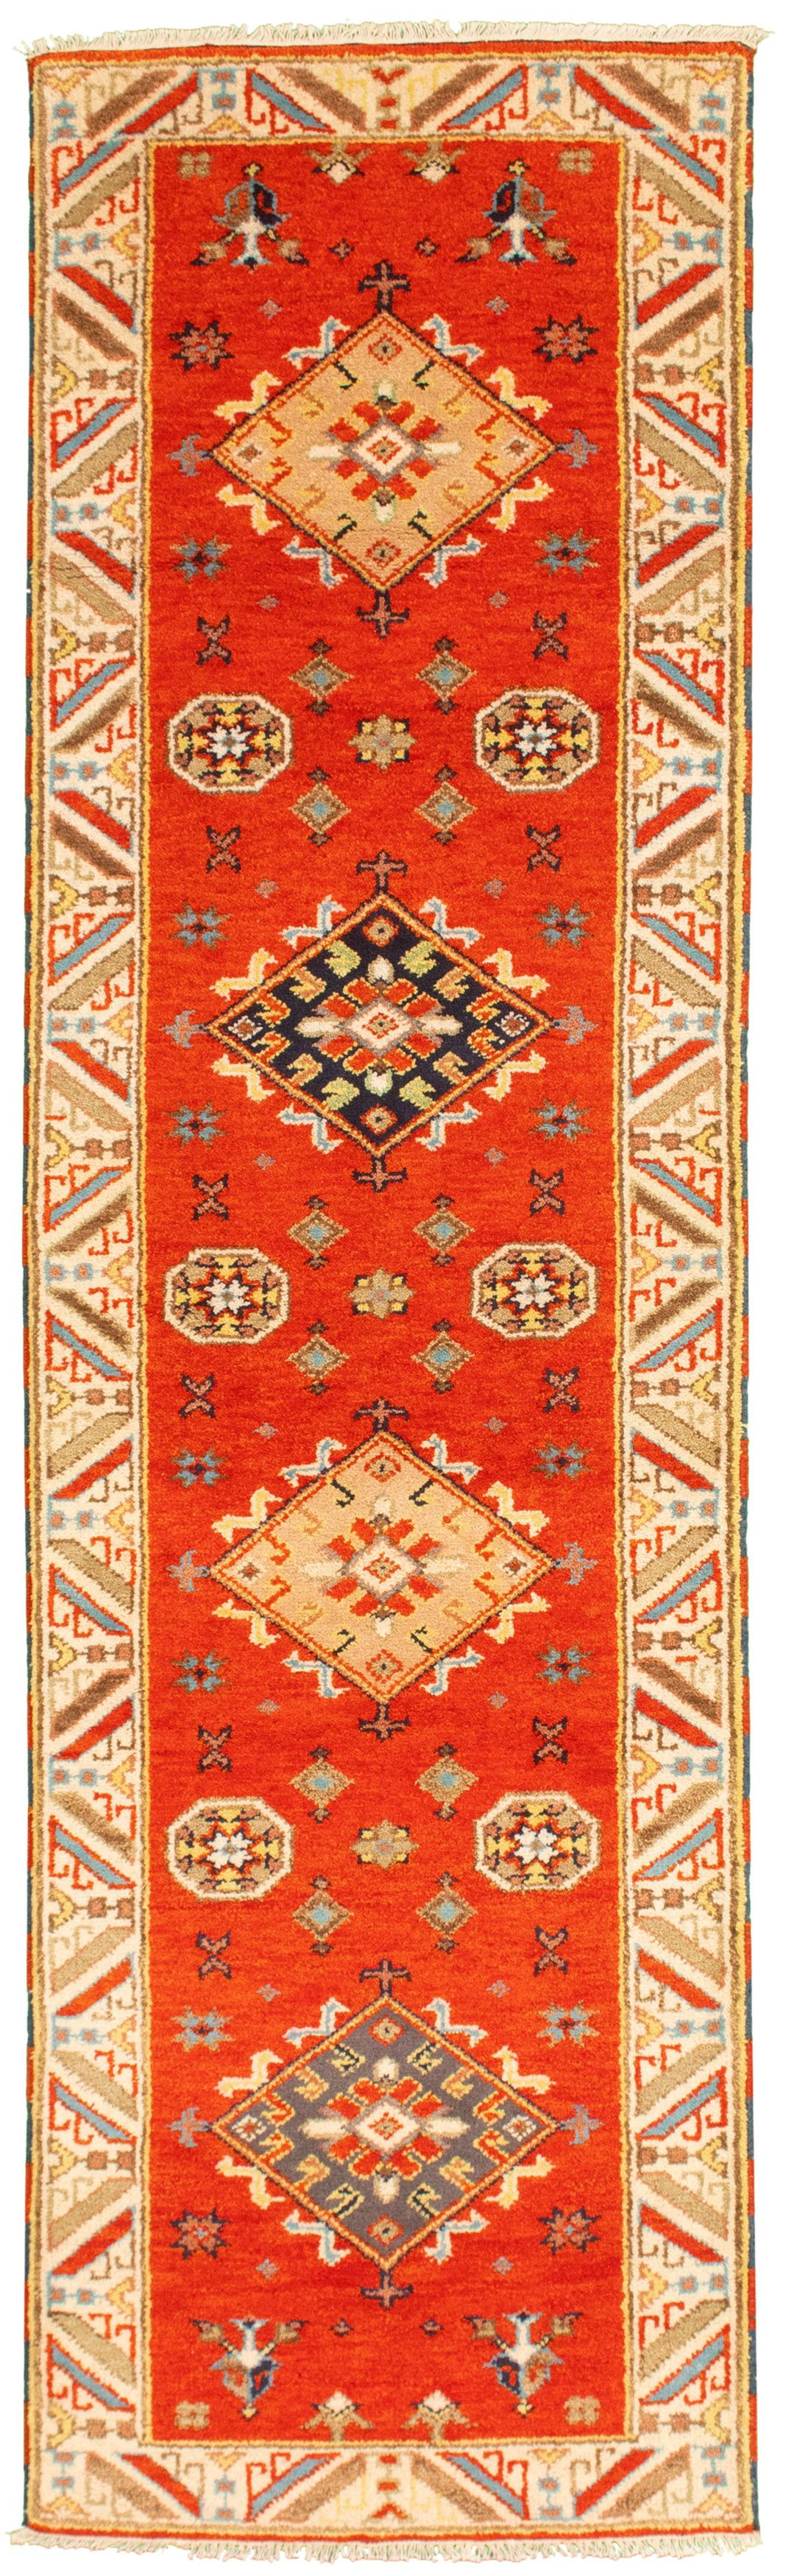 "Hand-knotted Royal Kazak Burnt Orange Wool Rug 2'8"" x 9'10"" Size: 2'8"" x 9'10"""